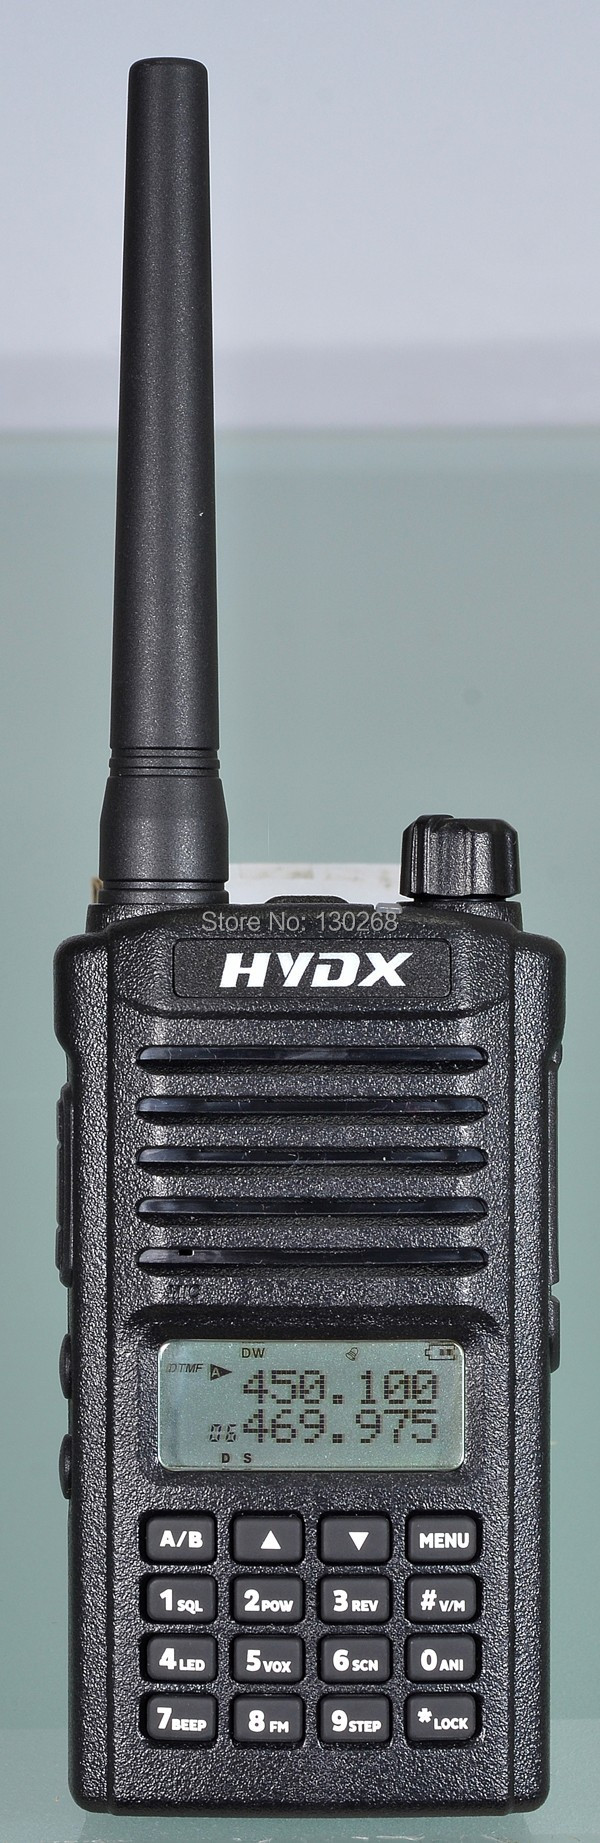 Communication Euipment 400-520MHz Radio HYDX-A1 Decoder and Encoder for  Encrypted Channel